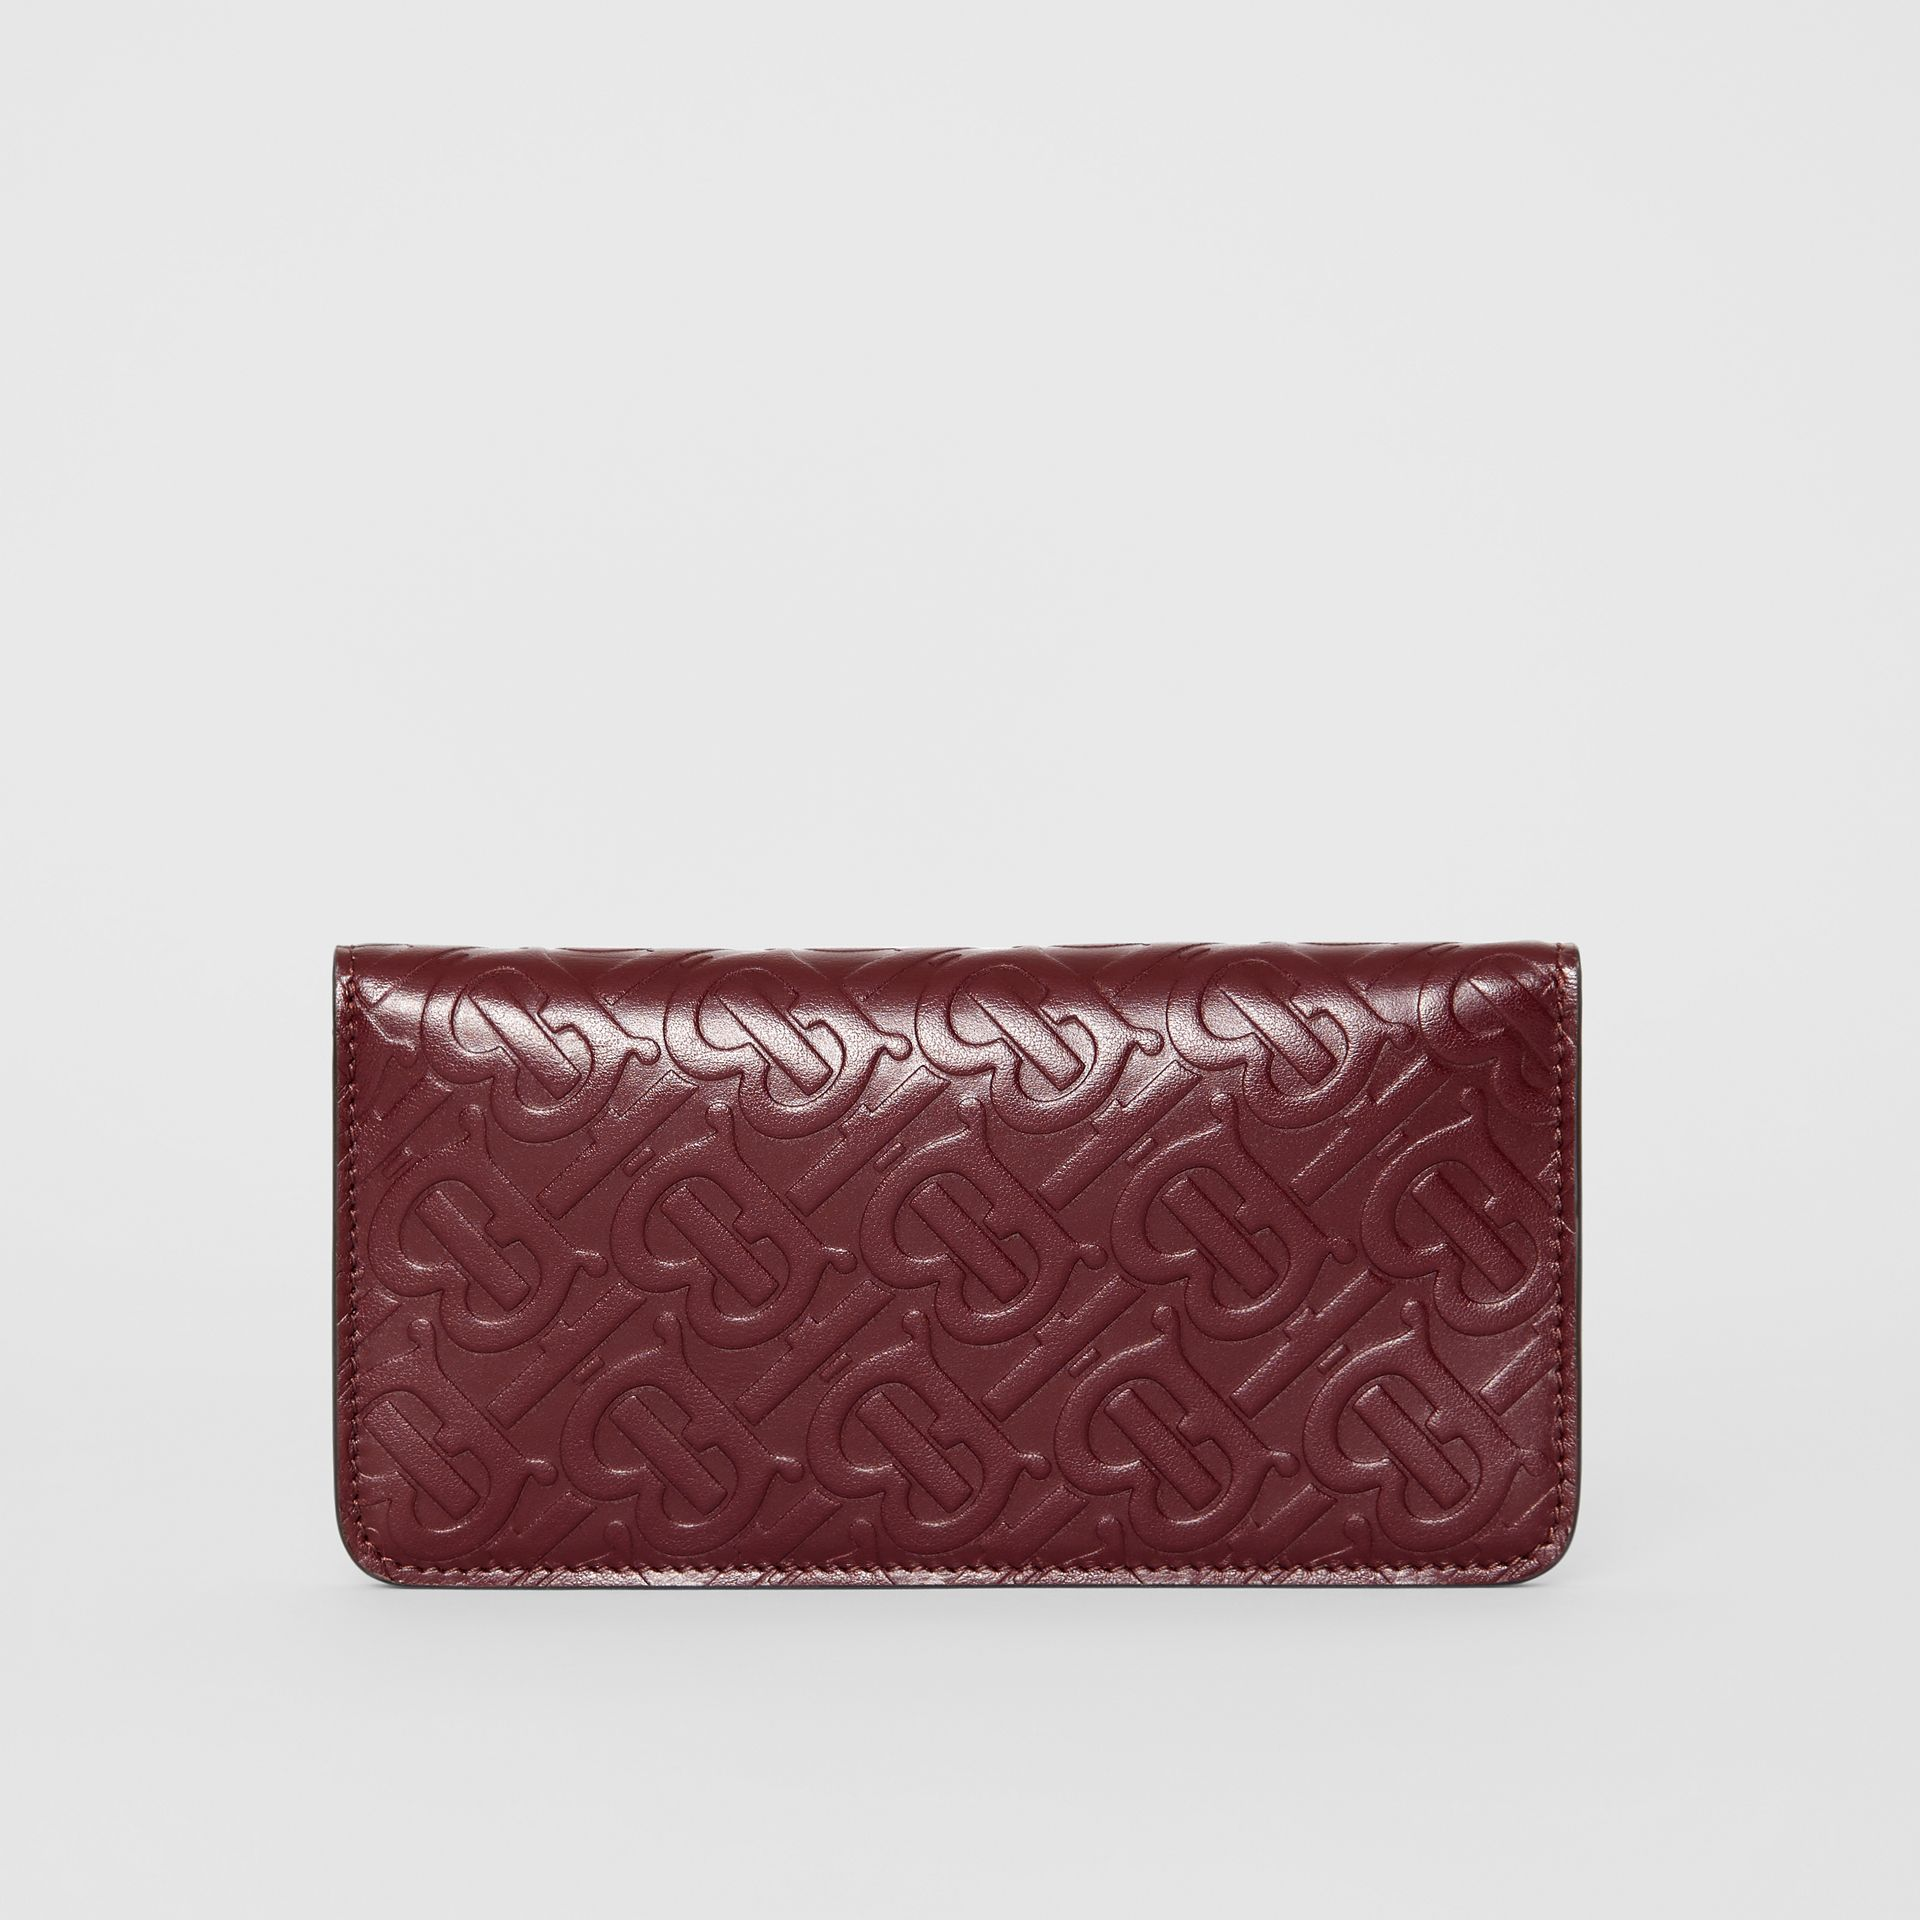 Monogram Leather Phone Wallet in Oxblood - Women | Burberry - gallery image 5